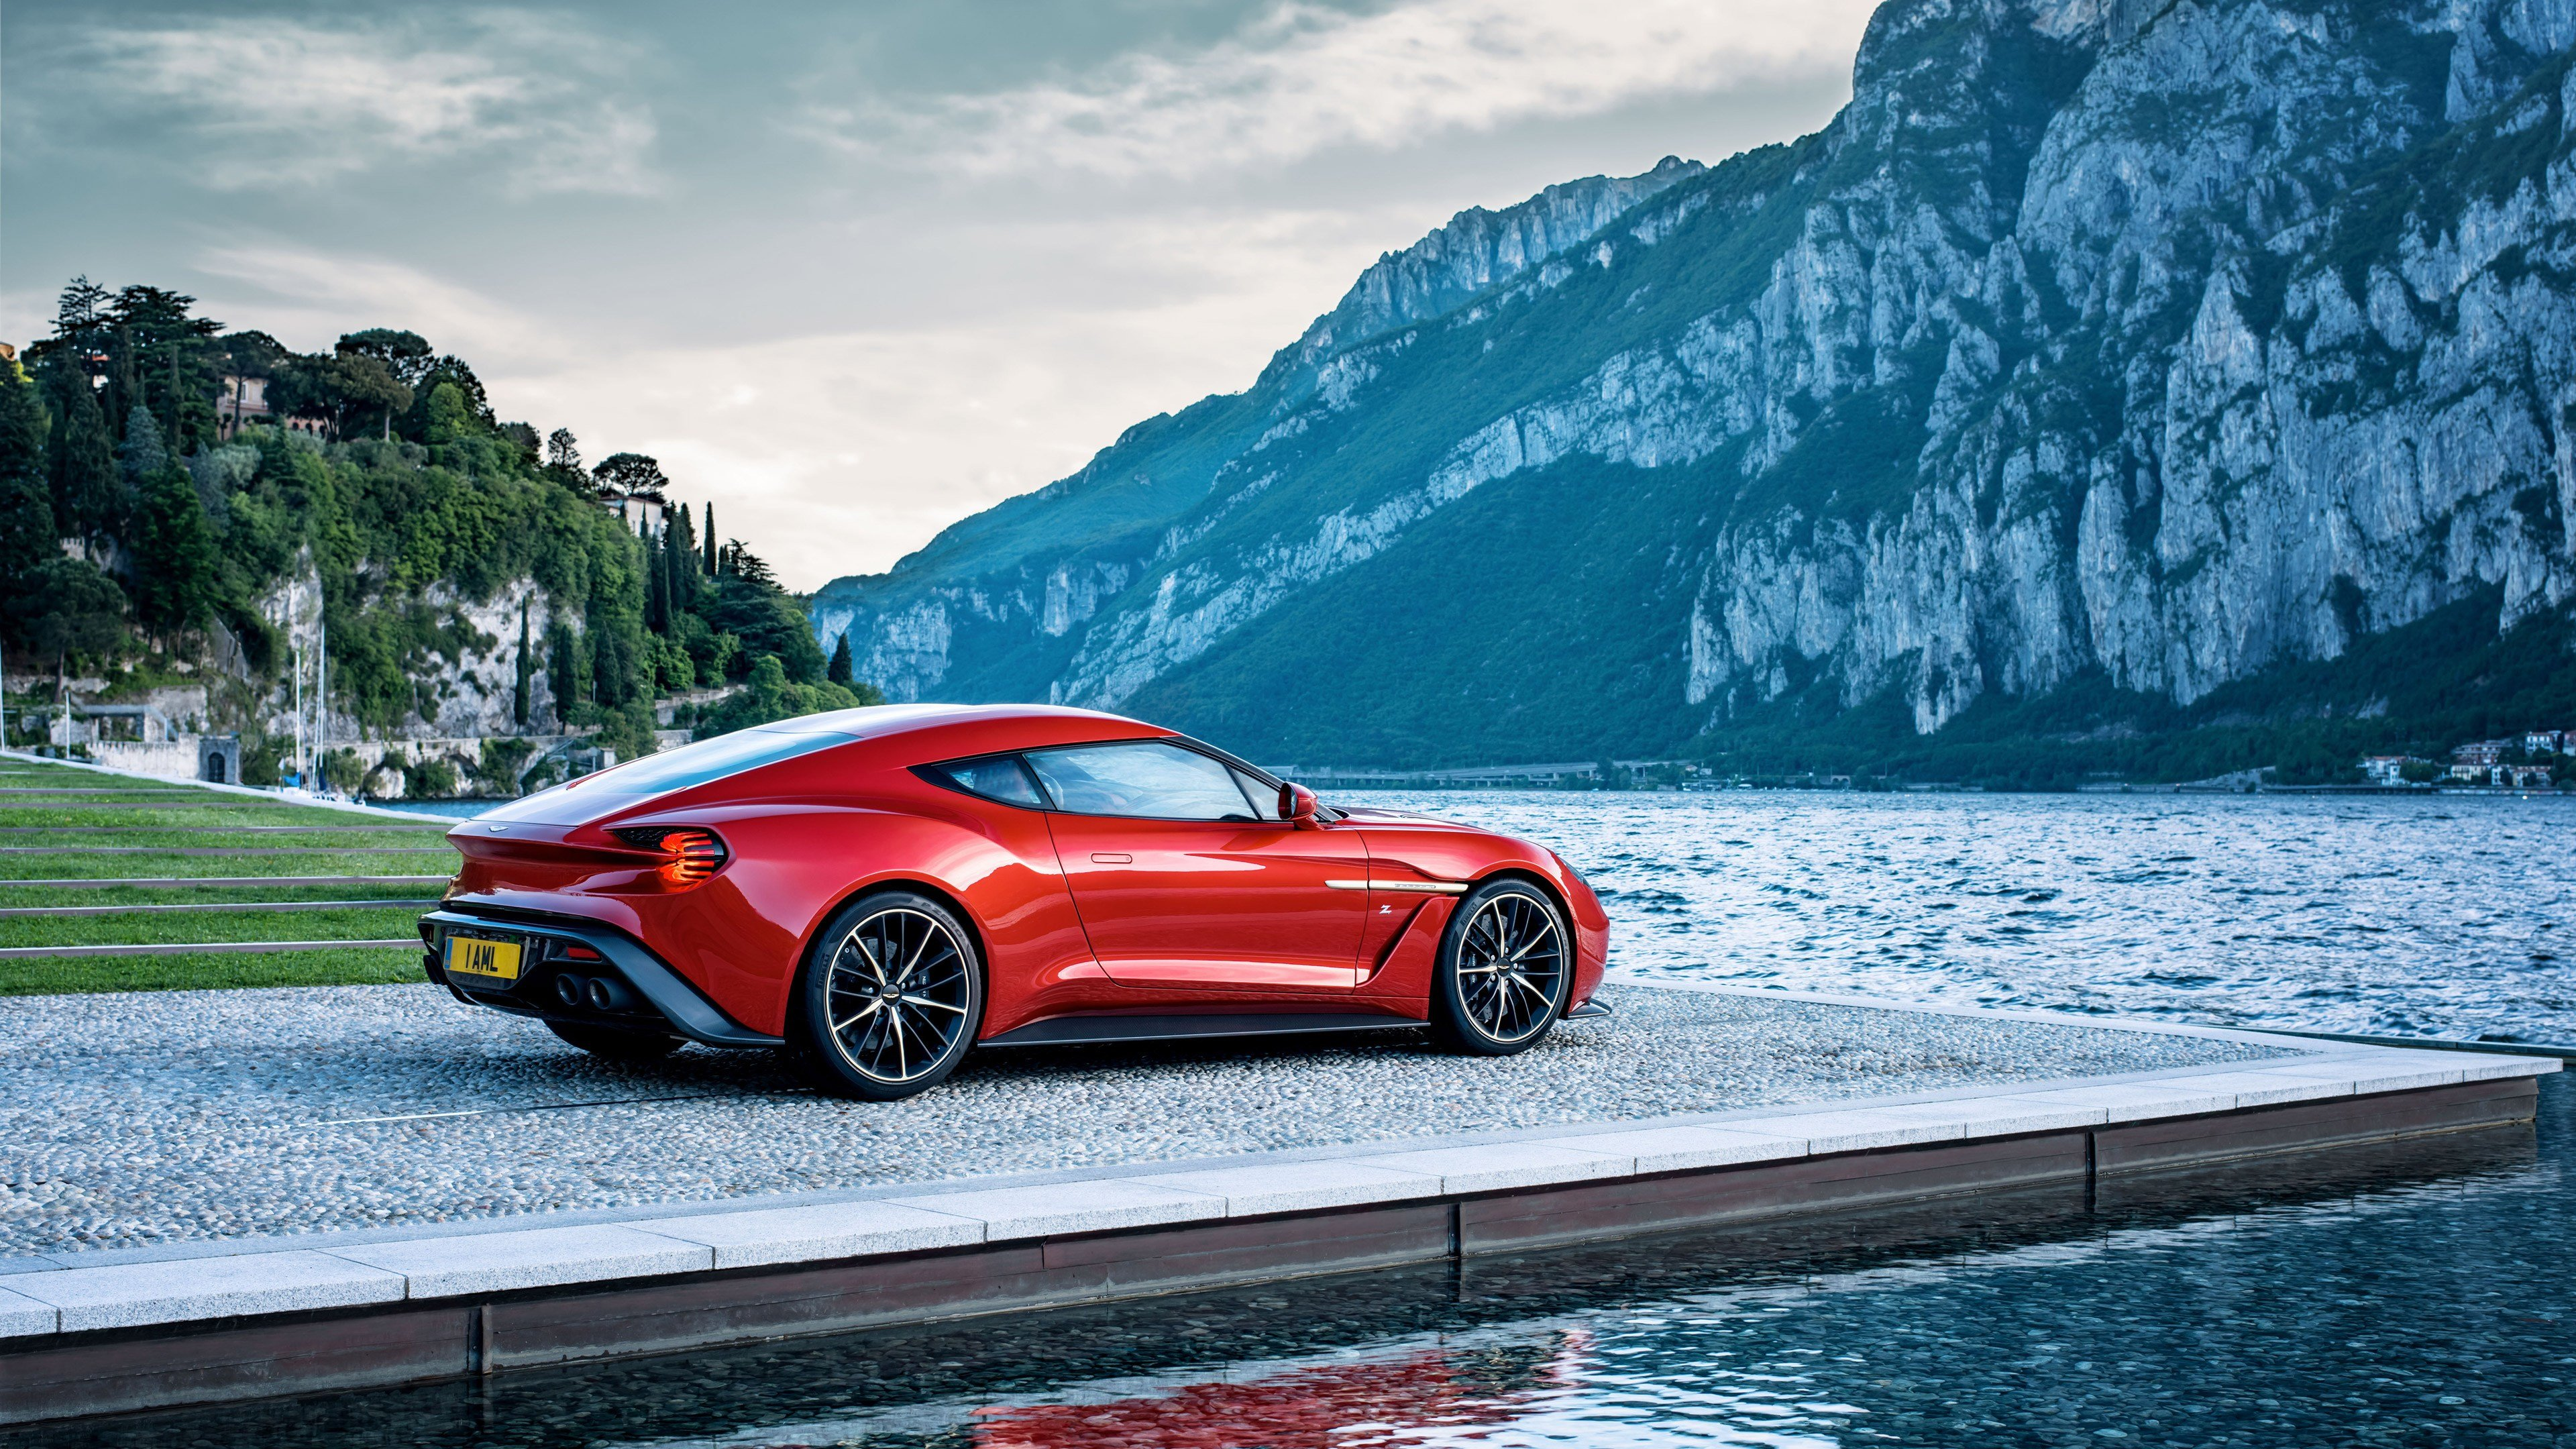 Latest Aston Martin Vanquish Hd Hd Cars 4K Wallpapers Images Free Download